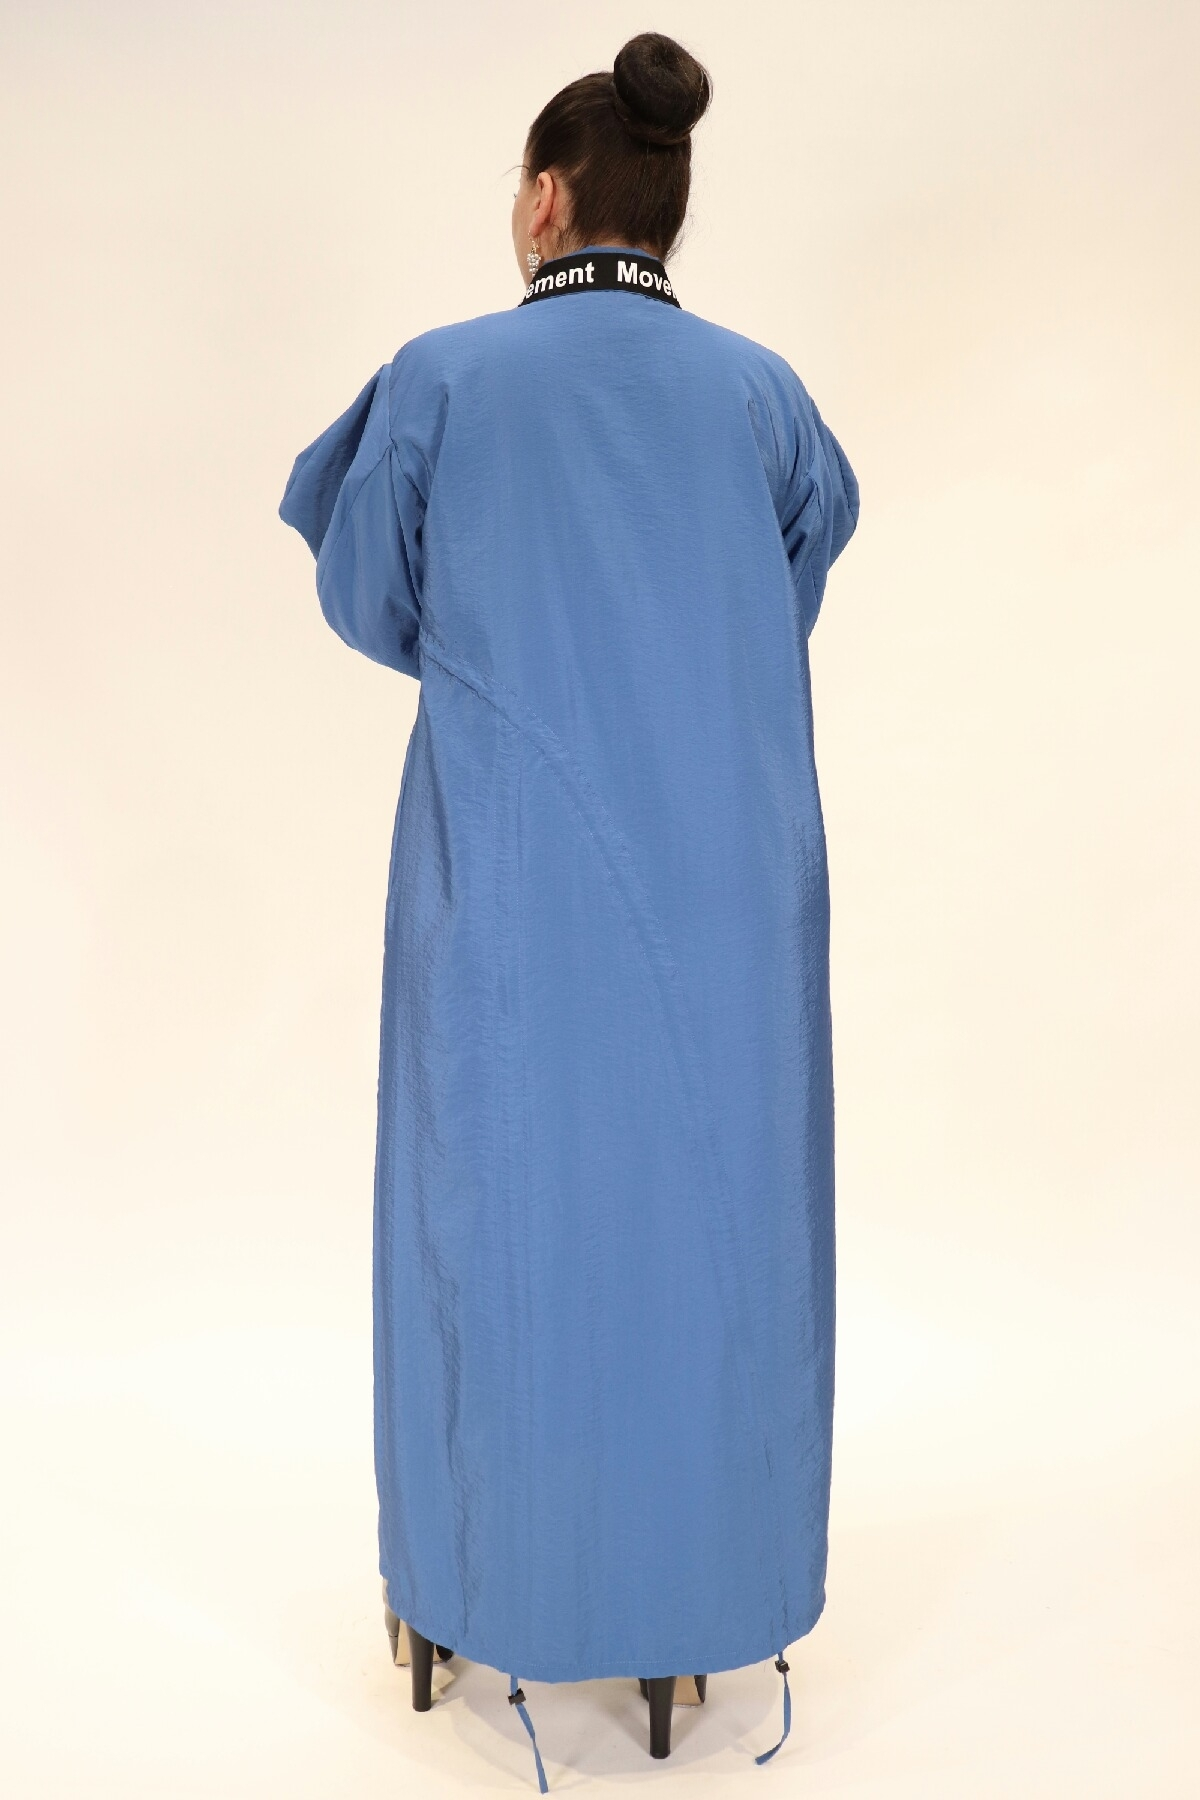 Baggy long dress with pocket zipped collar